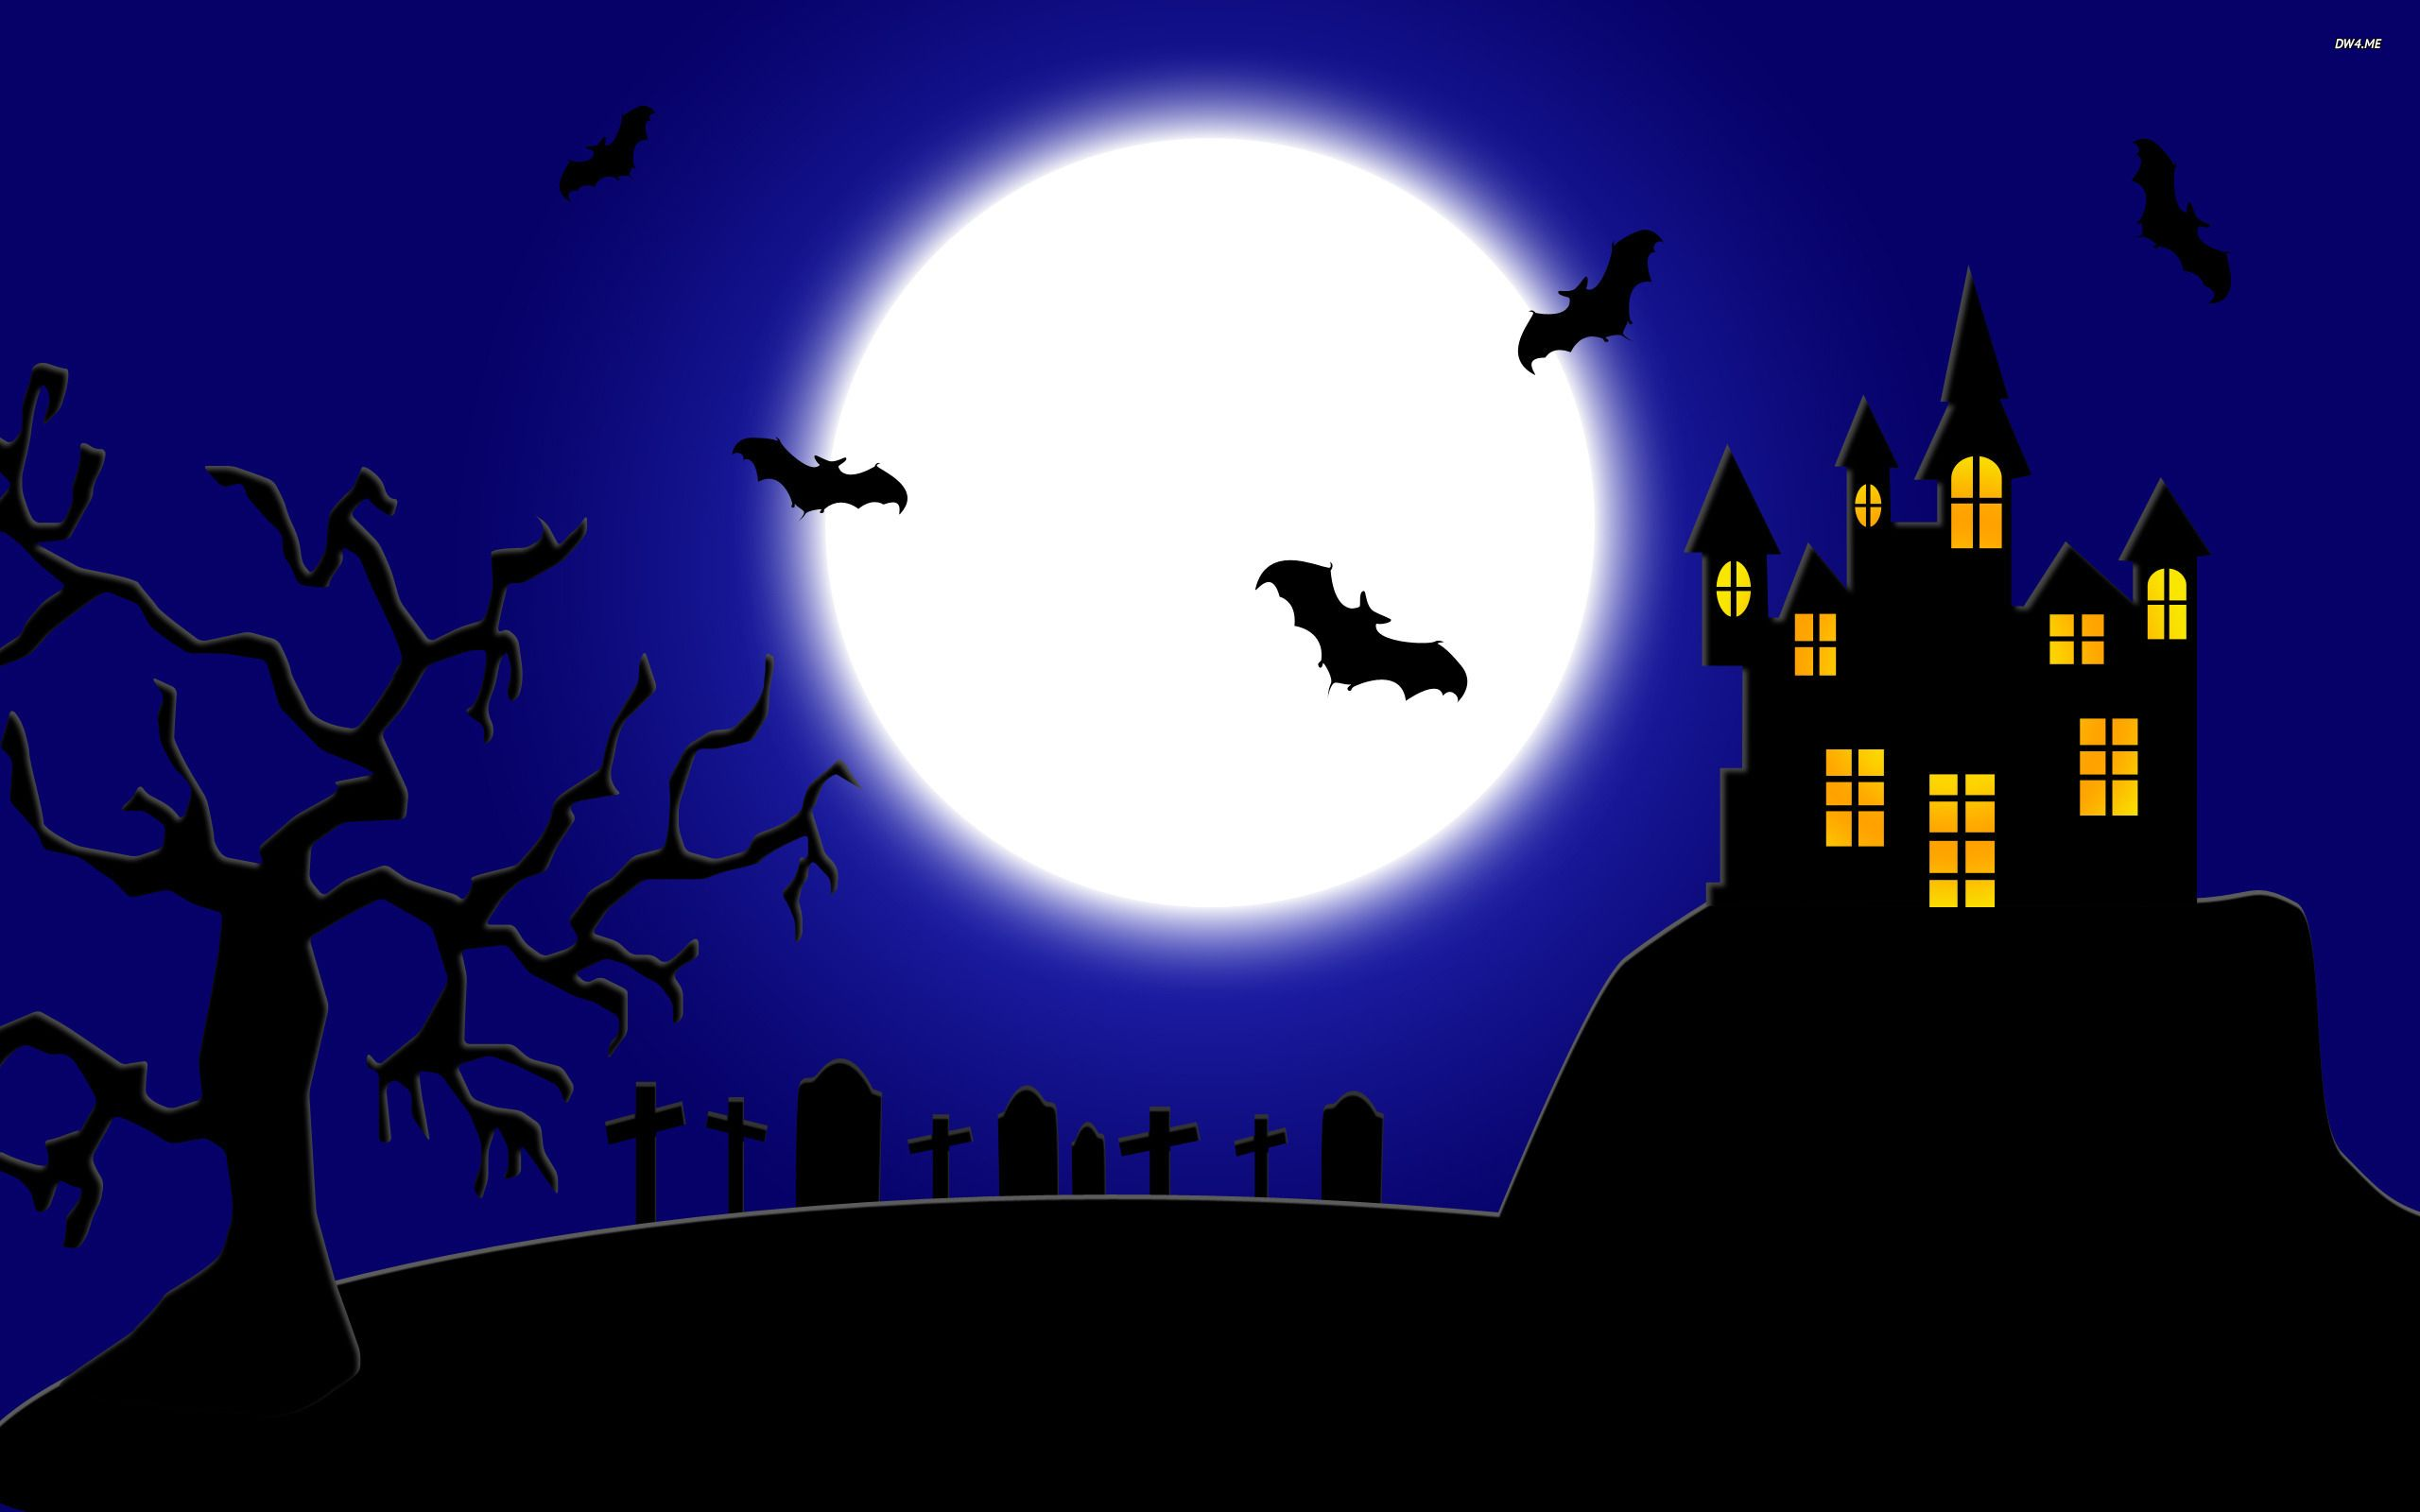 spooky halloween holiday desktop wallpaper moon wallpaper halloween wallpaper bat wallpaper cemetery wallpaper holidays no - Spooky Halloween Pictures Free